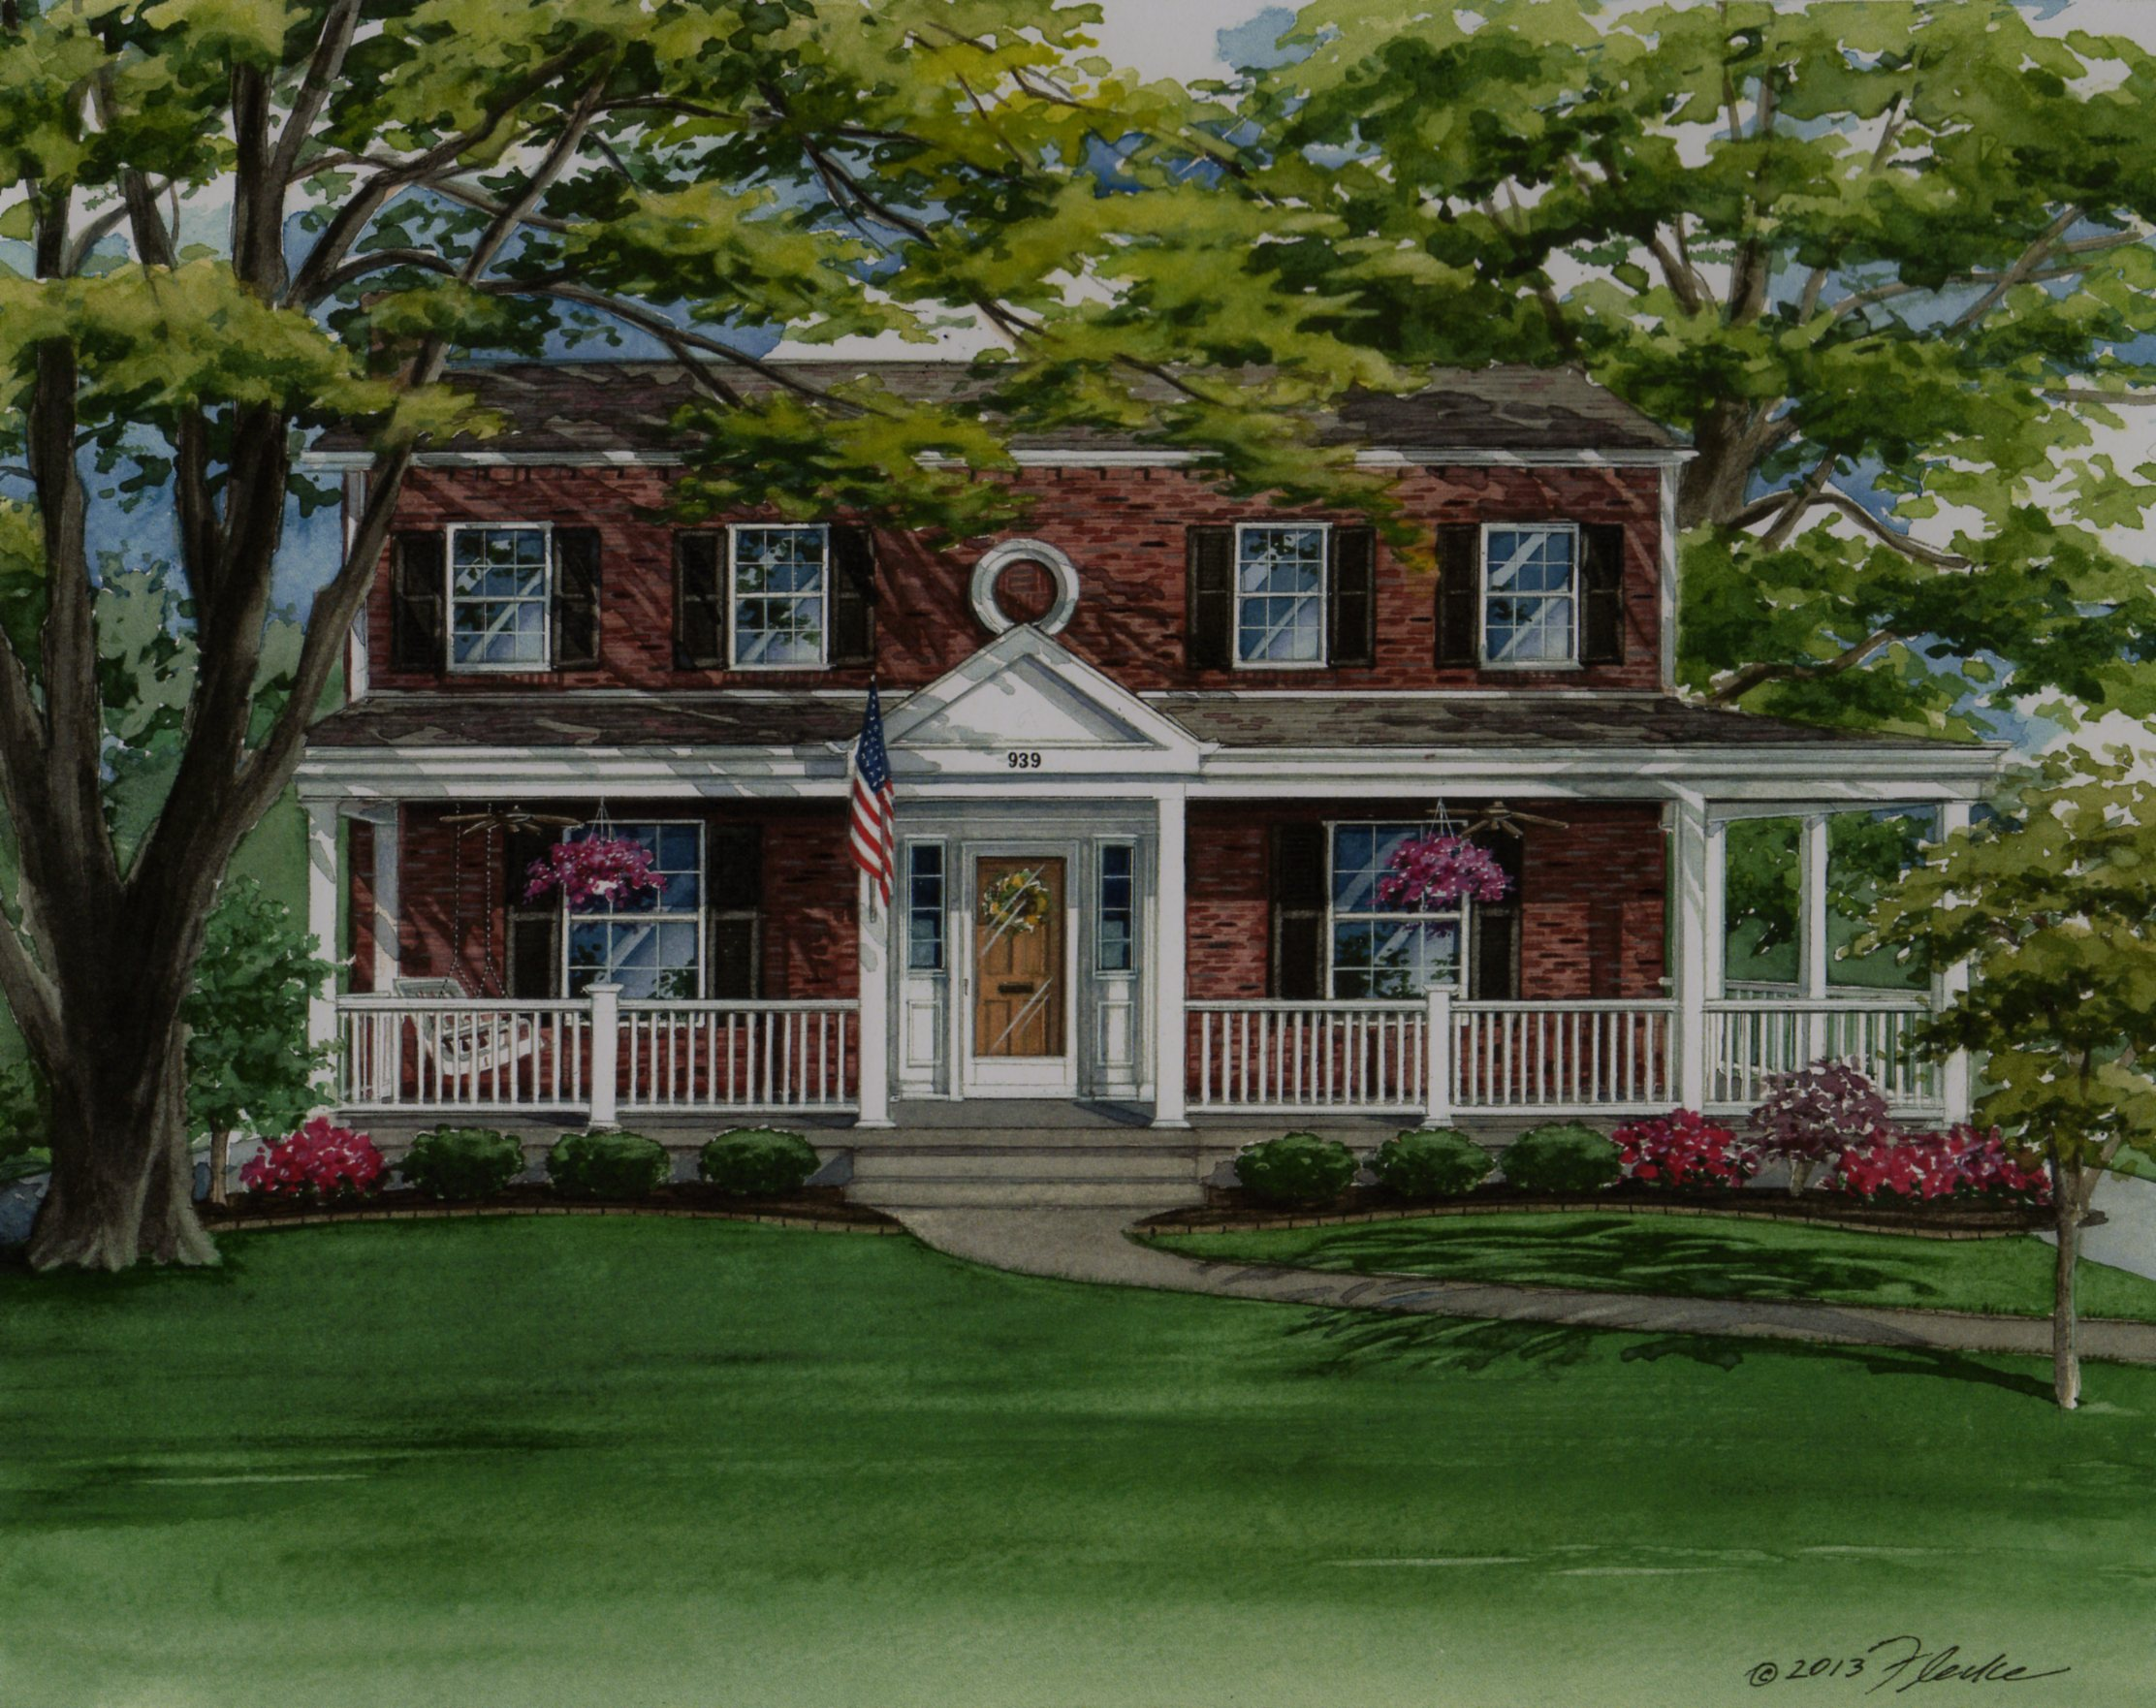 News | Custom house portrait of Colonial style home in